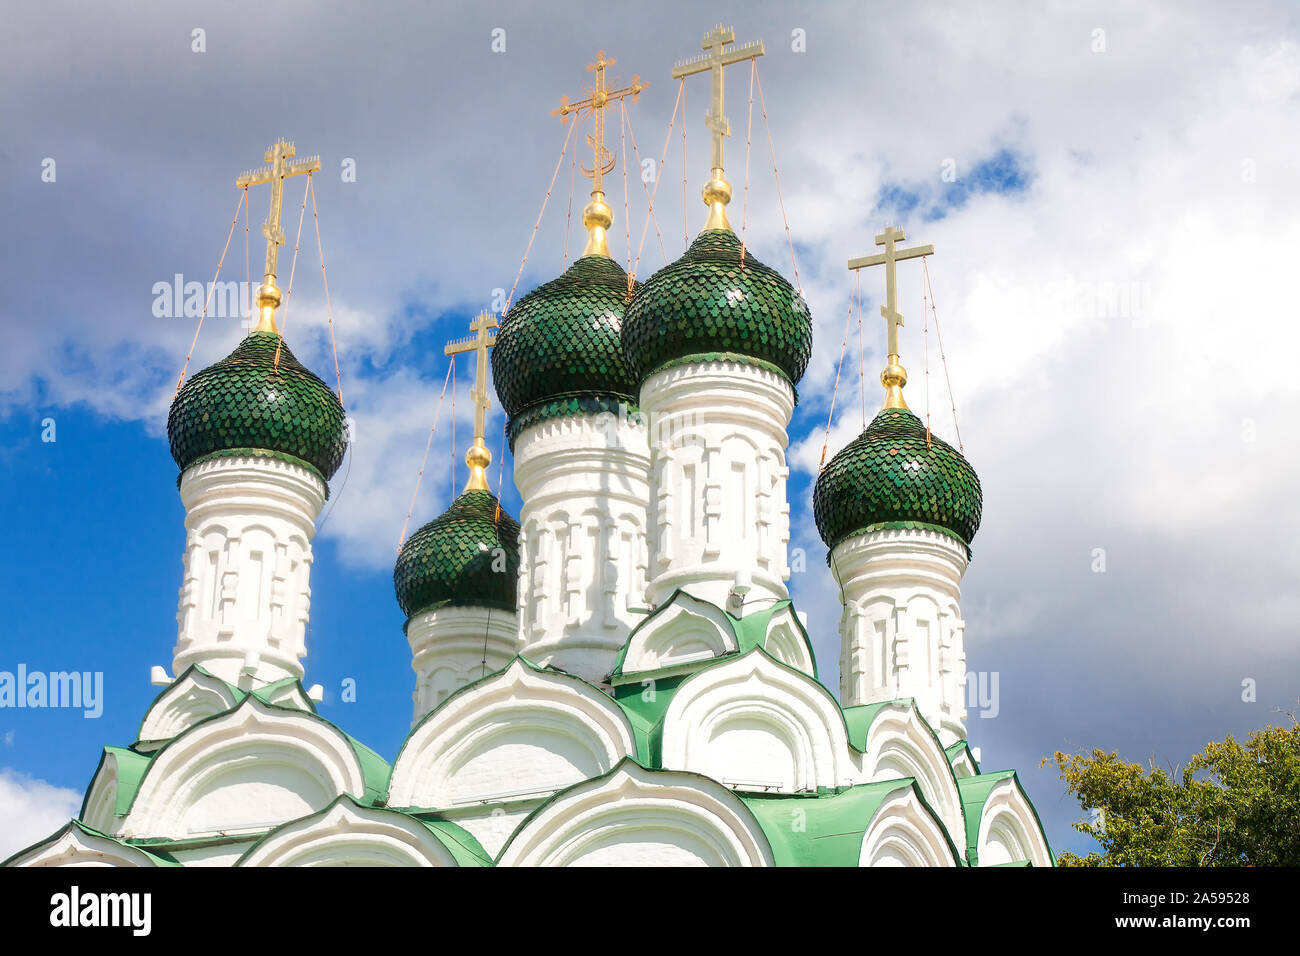 Ancient Russian Orthodox Churches. The green-painted domes of the Church of Blessed Prince Michael and Boyar Theodore of Chernigov the Wonderworkers i Stock Photo